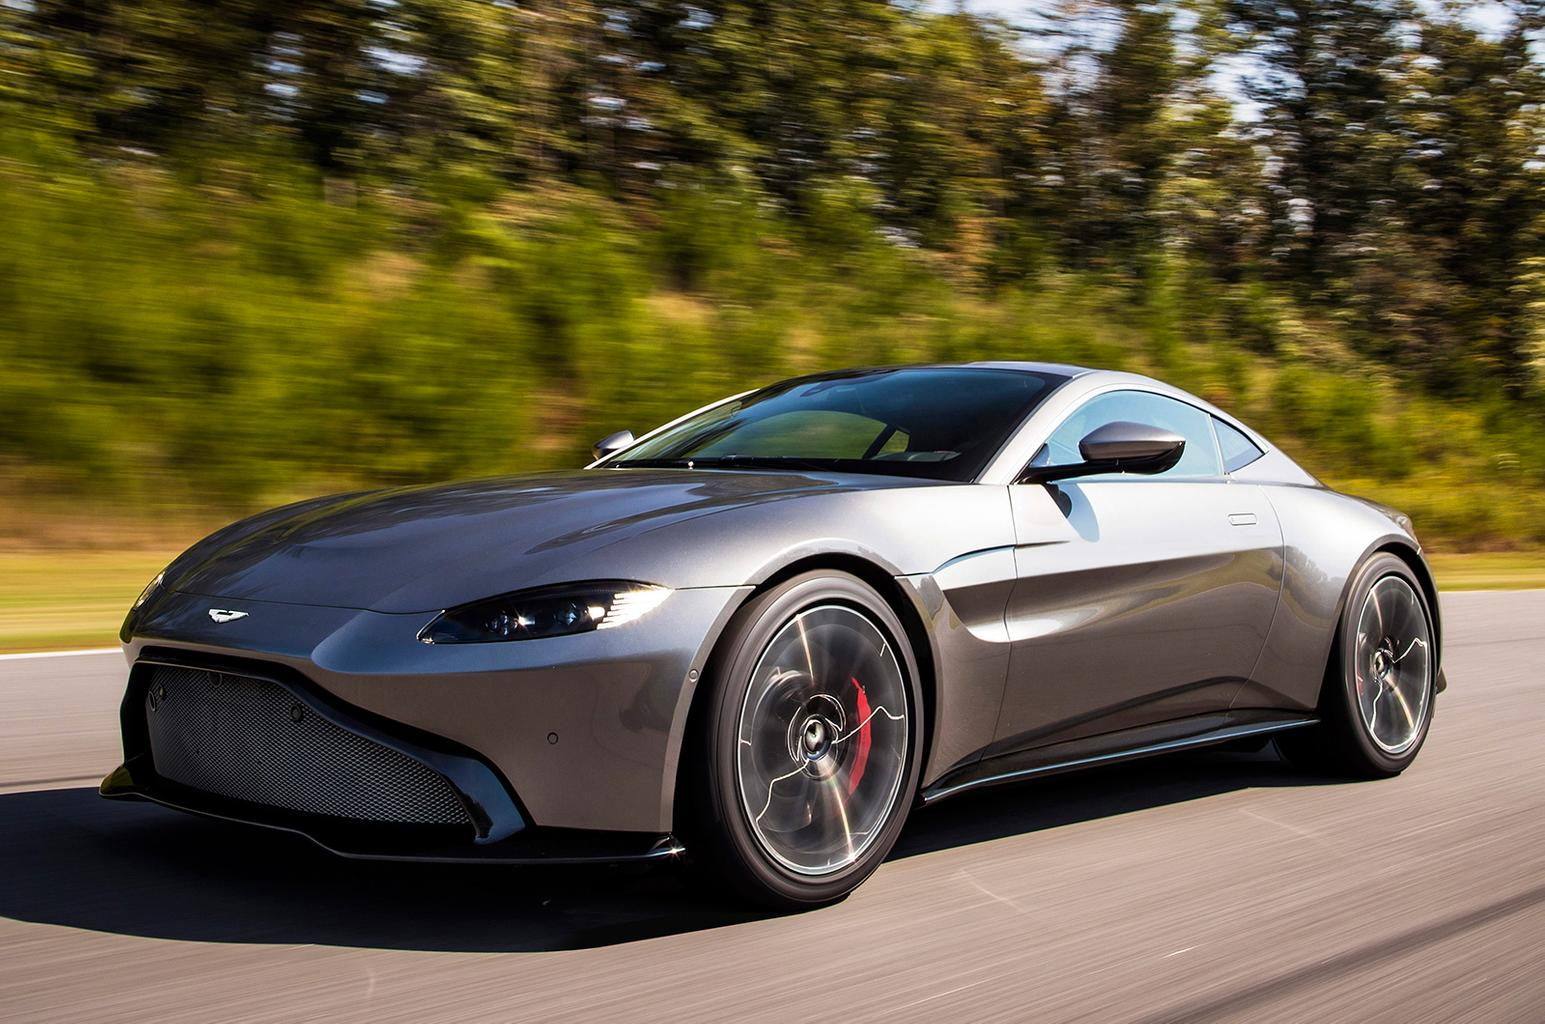 Aston Martin Vantage Revealed Price Specs And Release Date - How much do aston martins cost